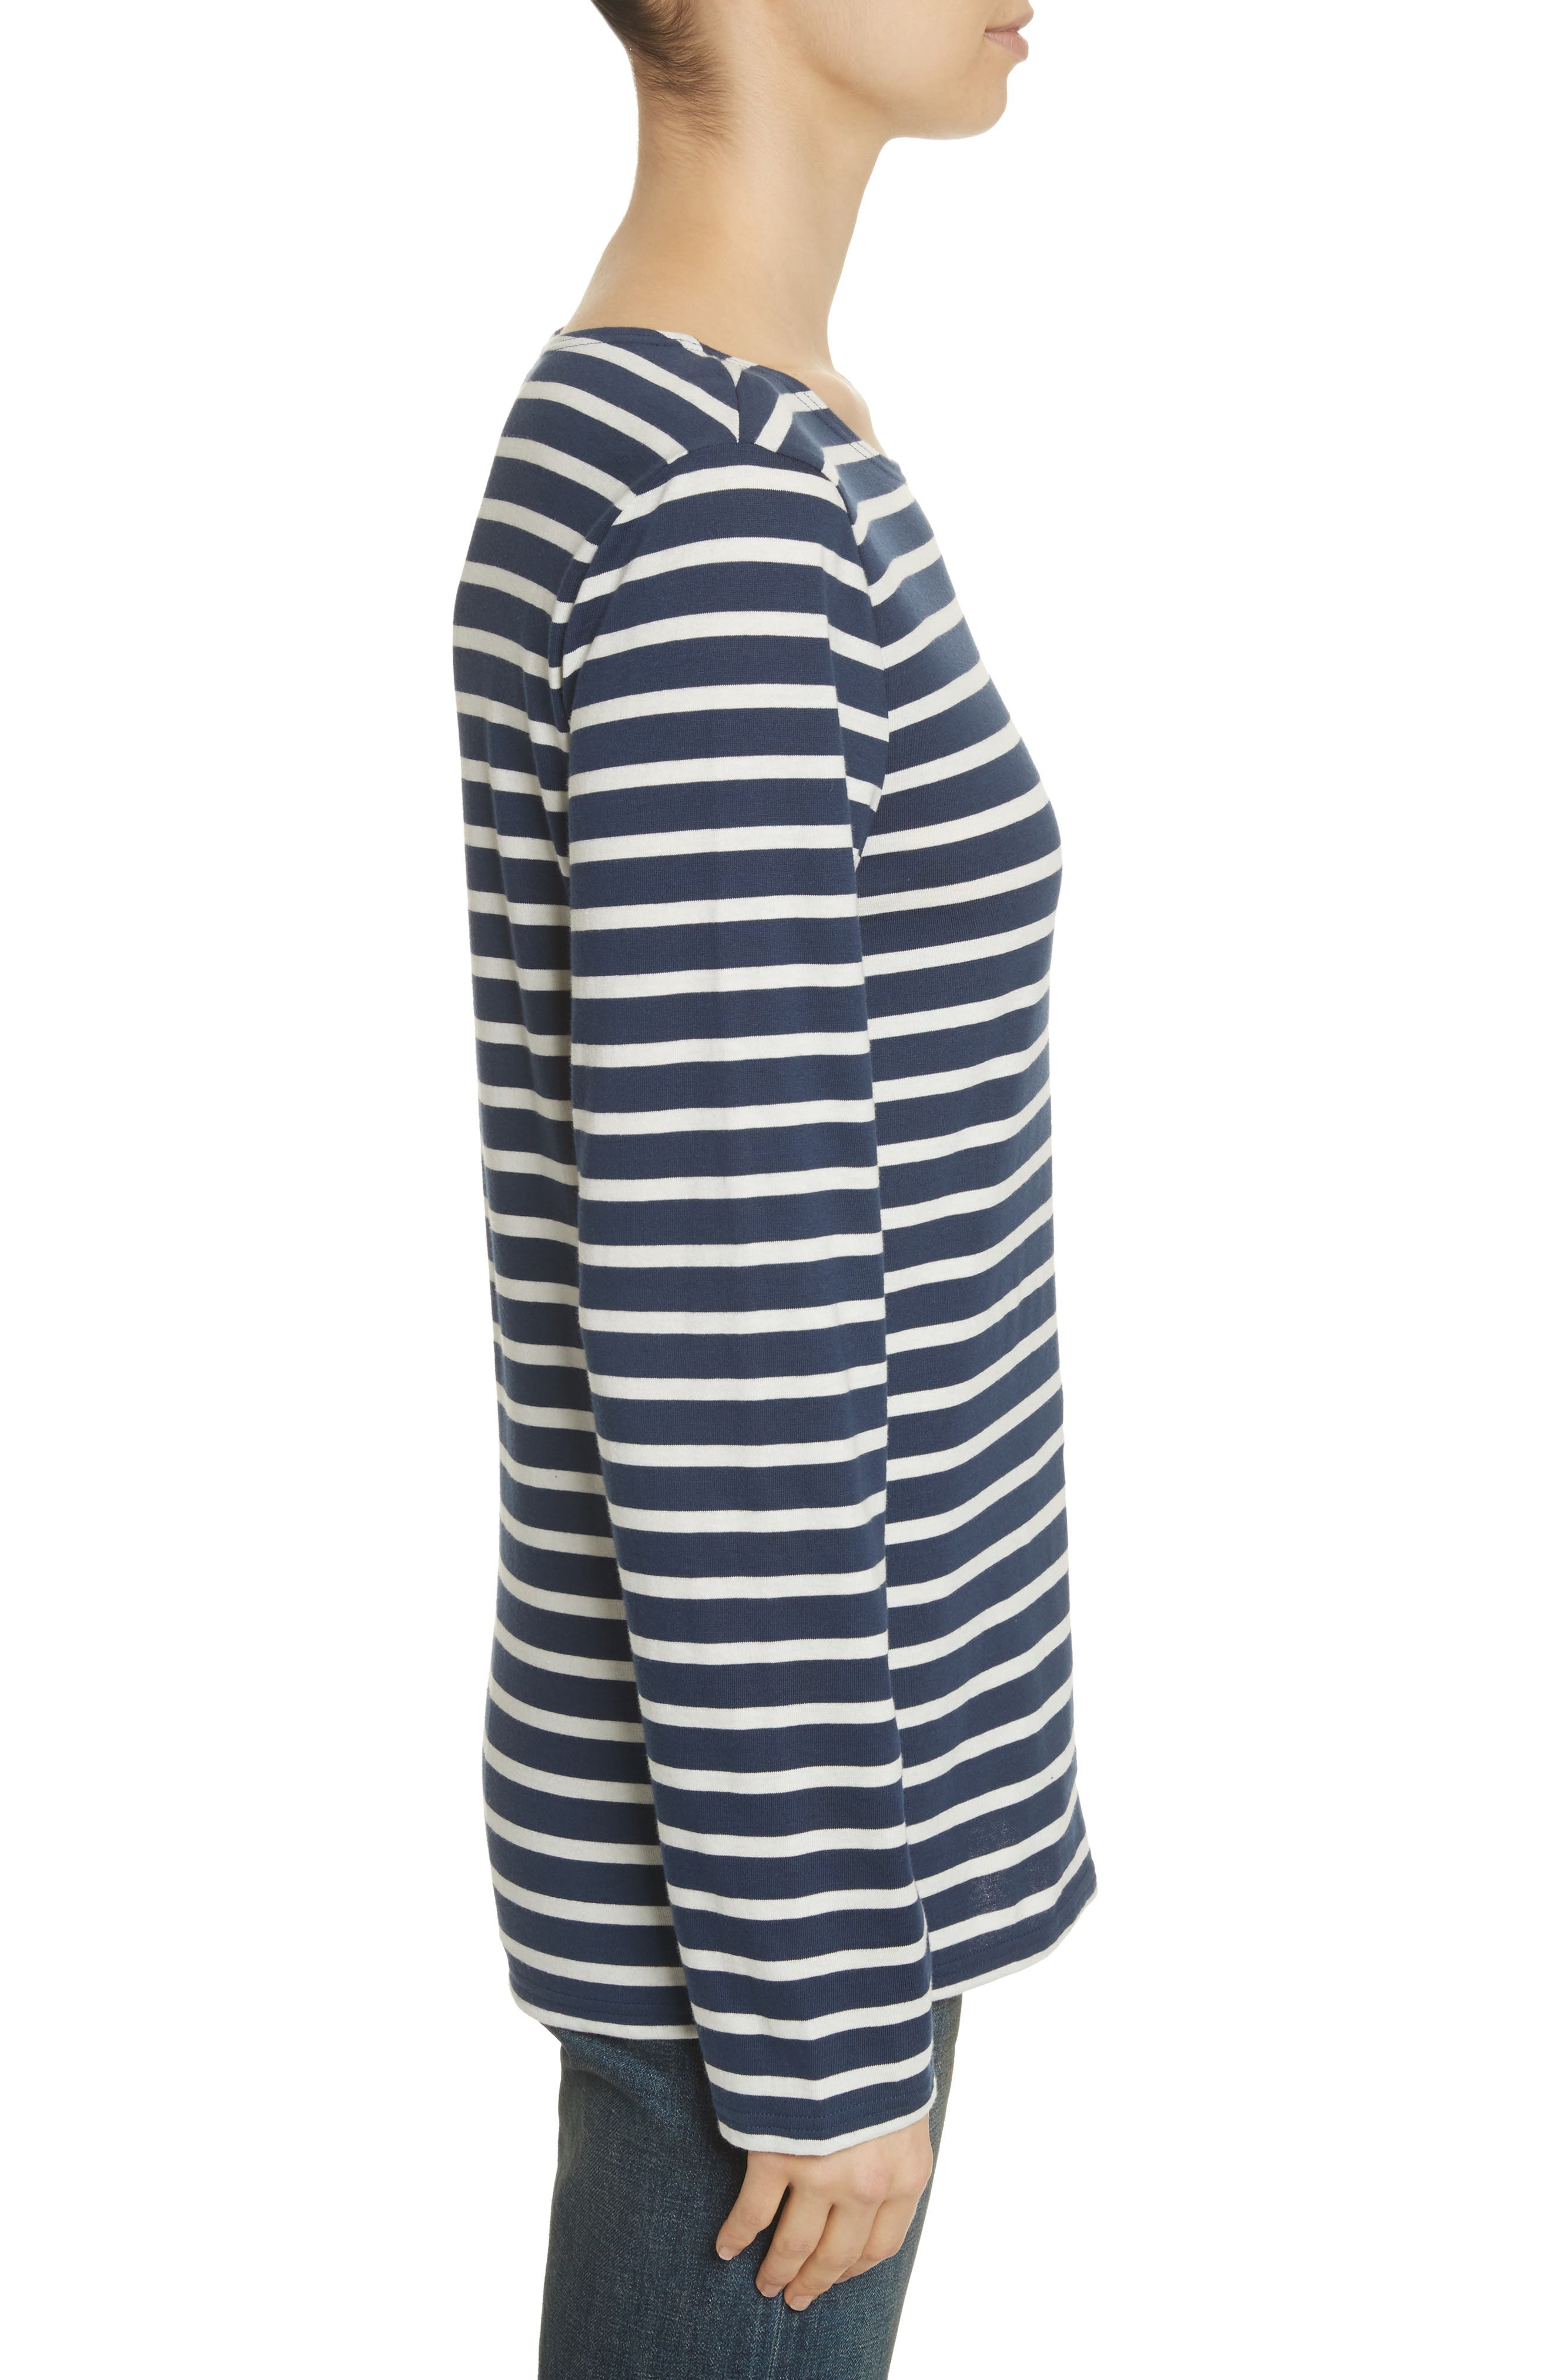 Alternate Image 4  - Saint James Minquiers Moderne Striped Sailor Shirt (Unisex)